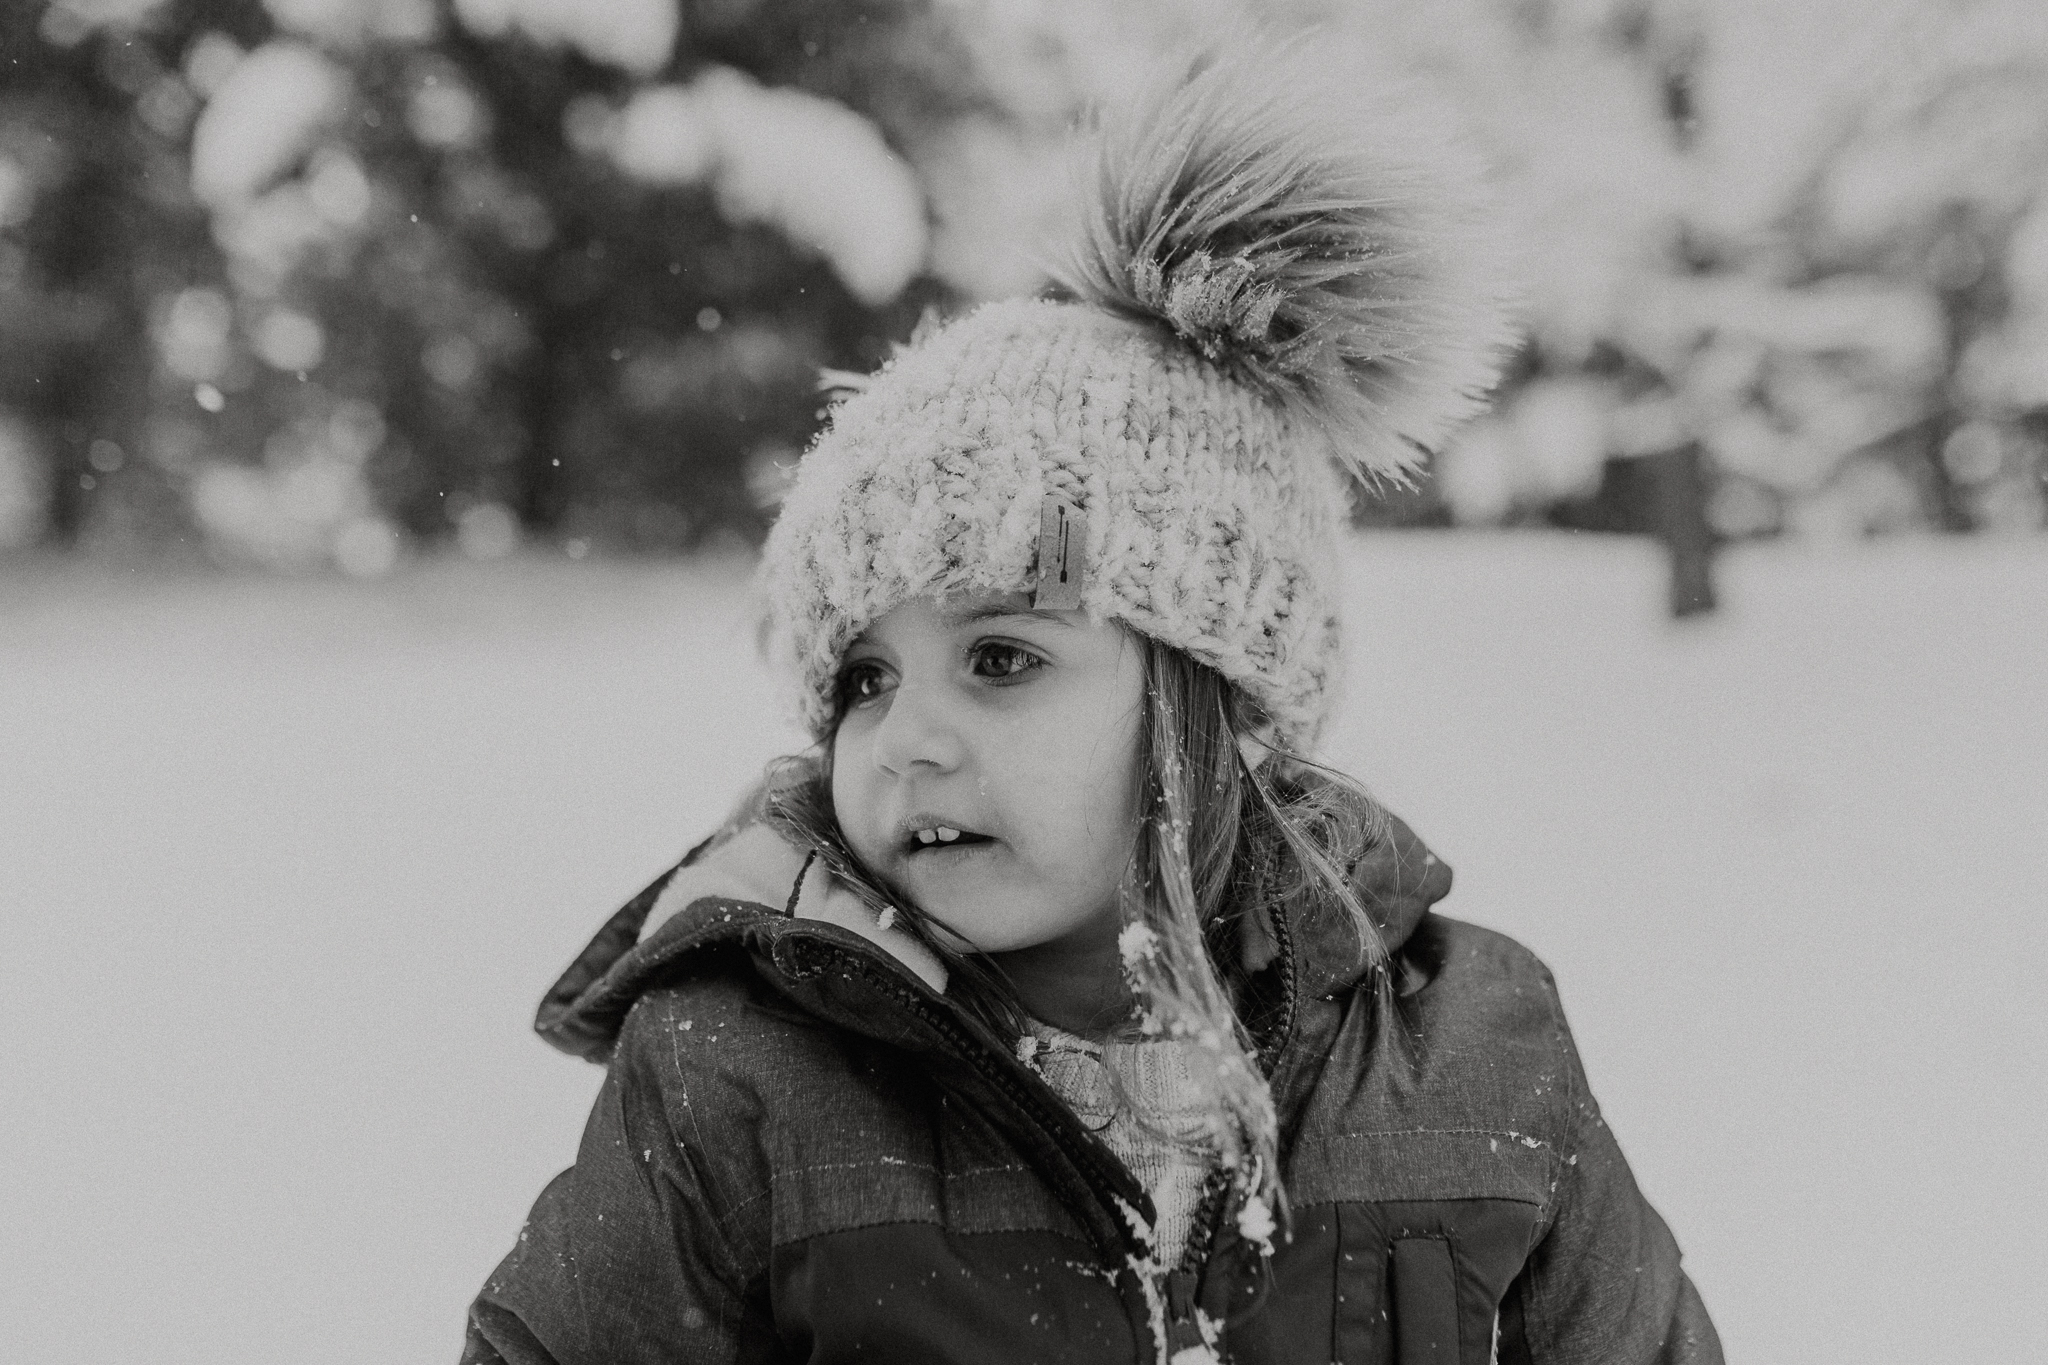 black and white snow day portrait childhood lifestyle documentary Ashburn Virginia Marti Austin Photography